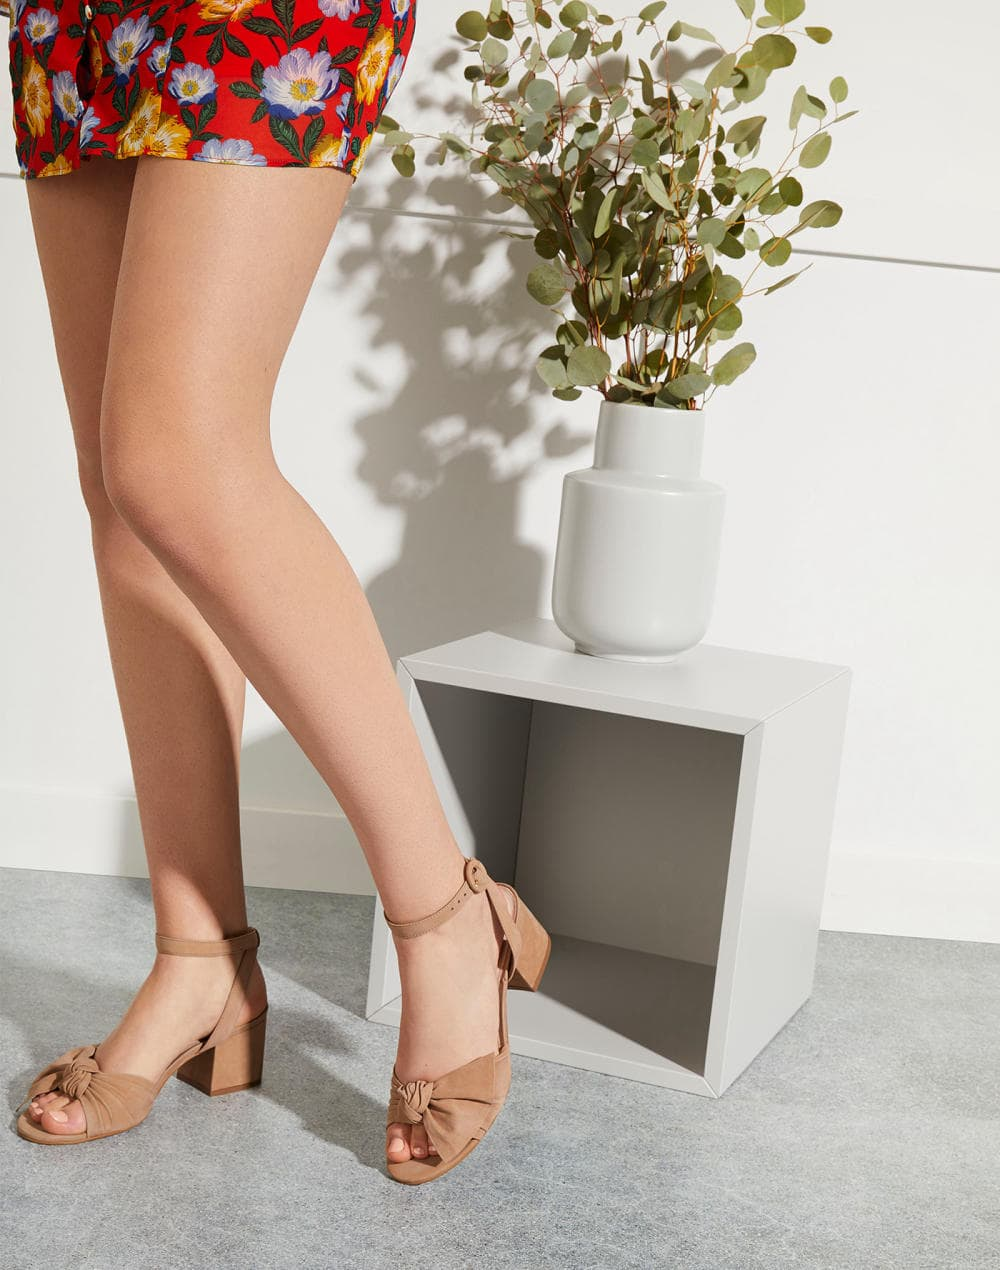 0f4c250e29 Aldo Shoes Canada is here to help you out in said accessories department,  as they are running a promotion where you can receive an additional 30% off  on ...